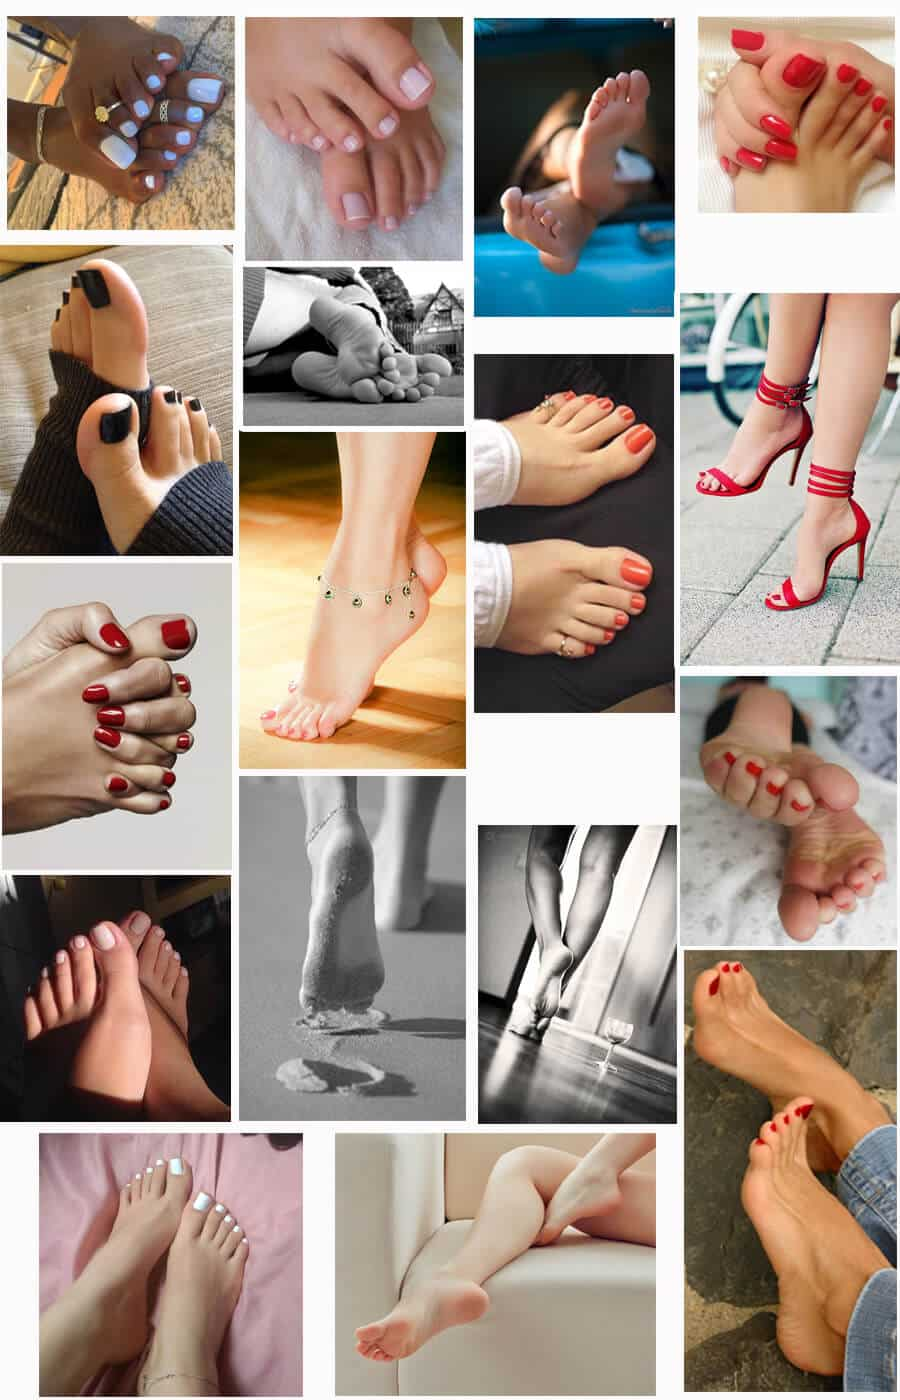 Feet-Picture-Best-for-sale-and-poses